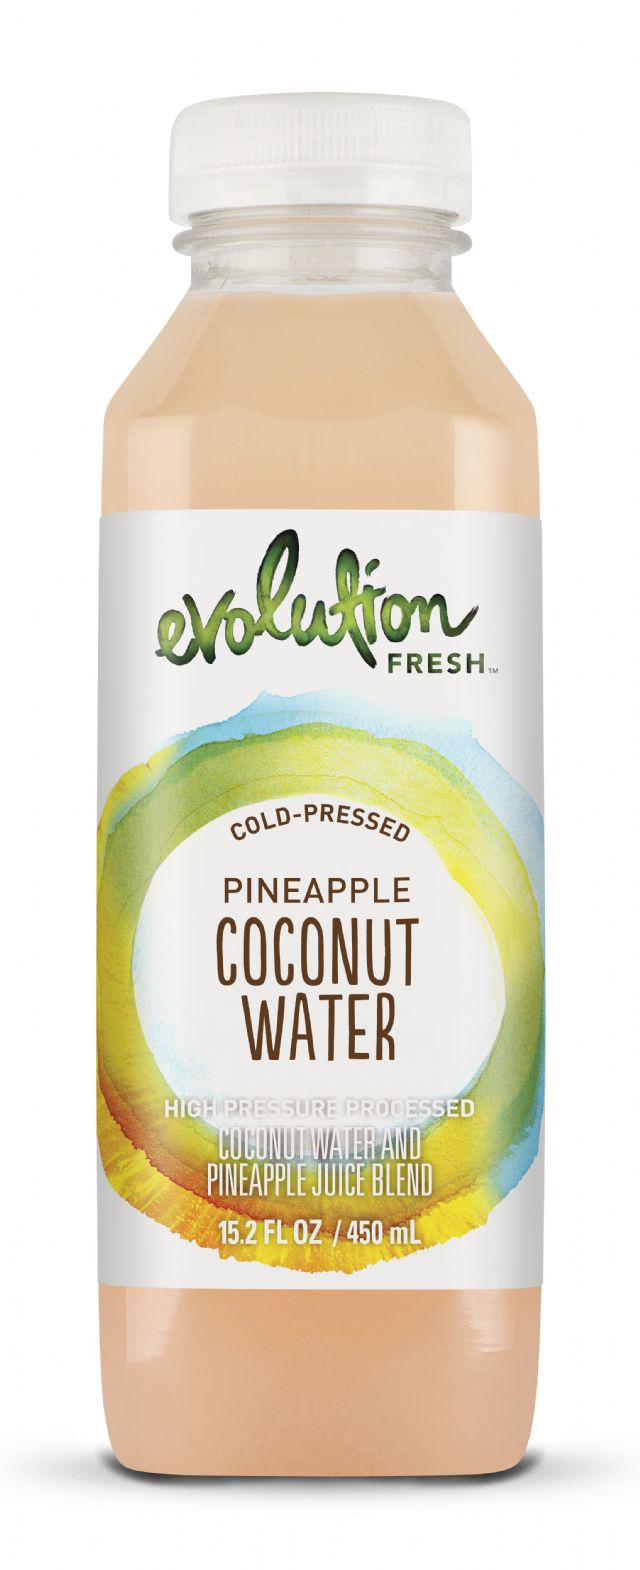 Evolution Fresh: PineappleCoconutWater copy